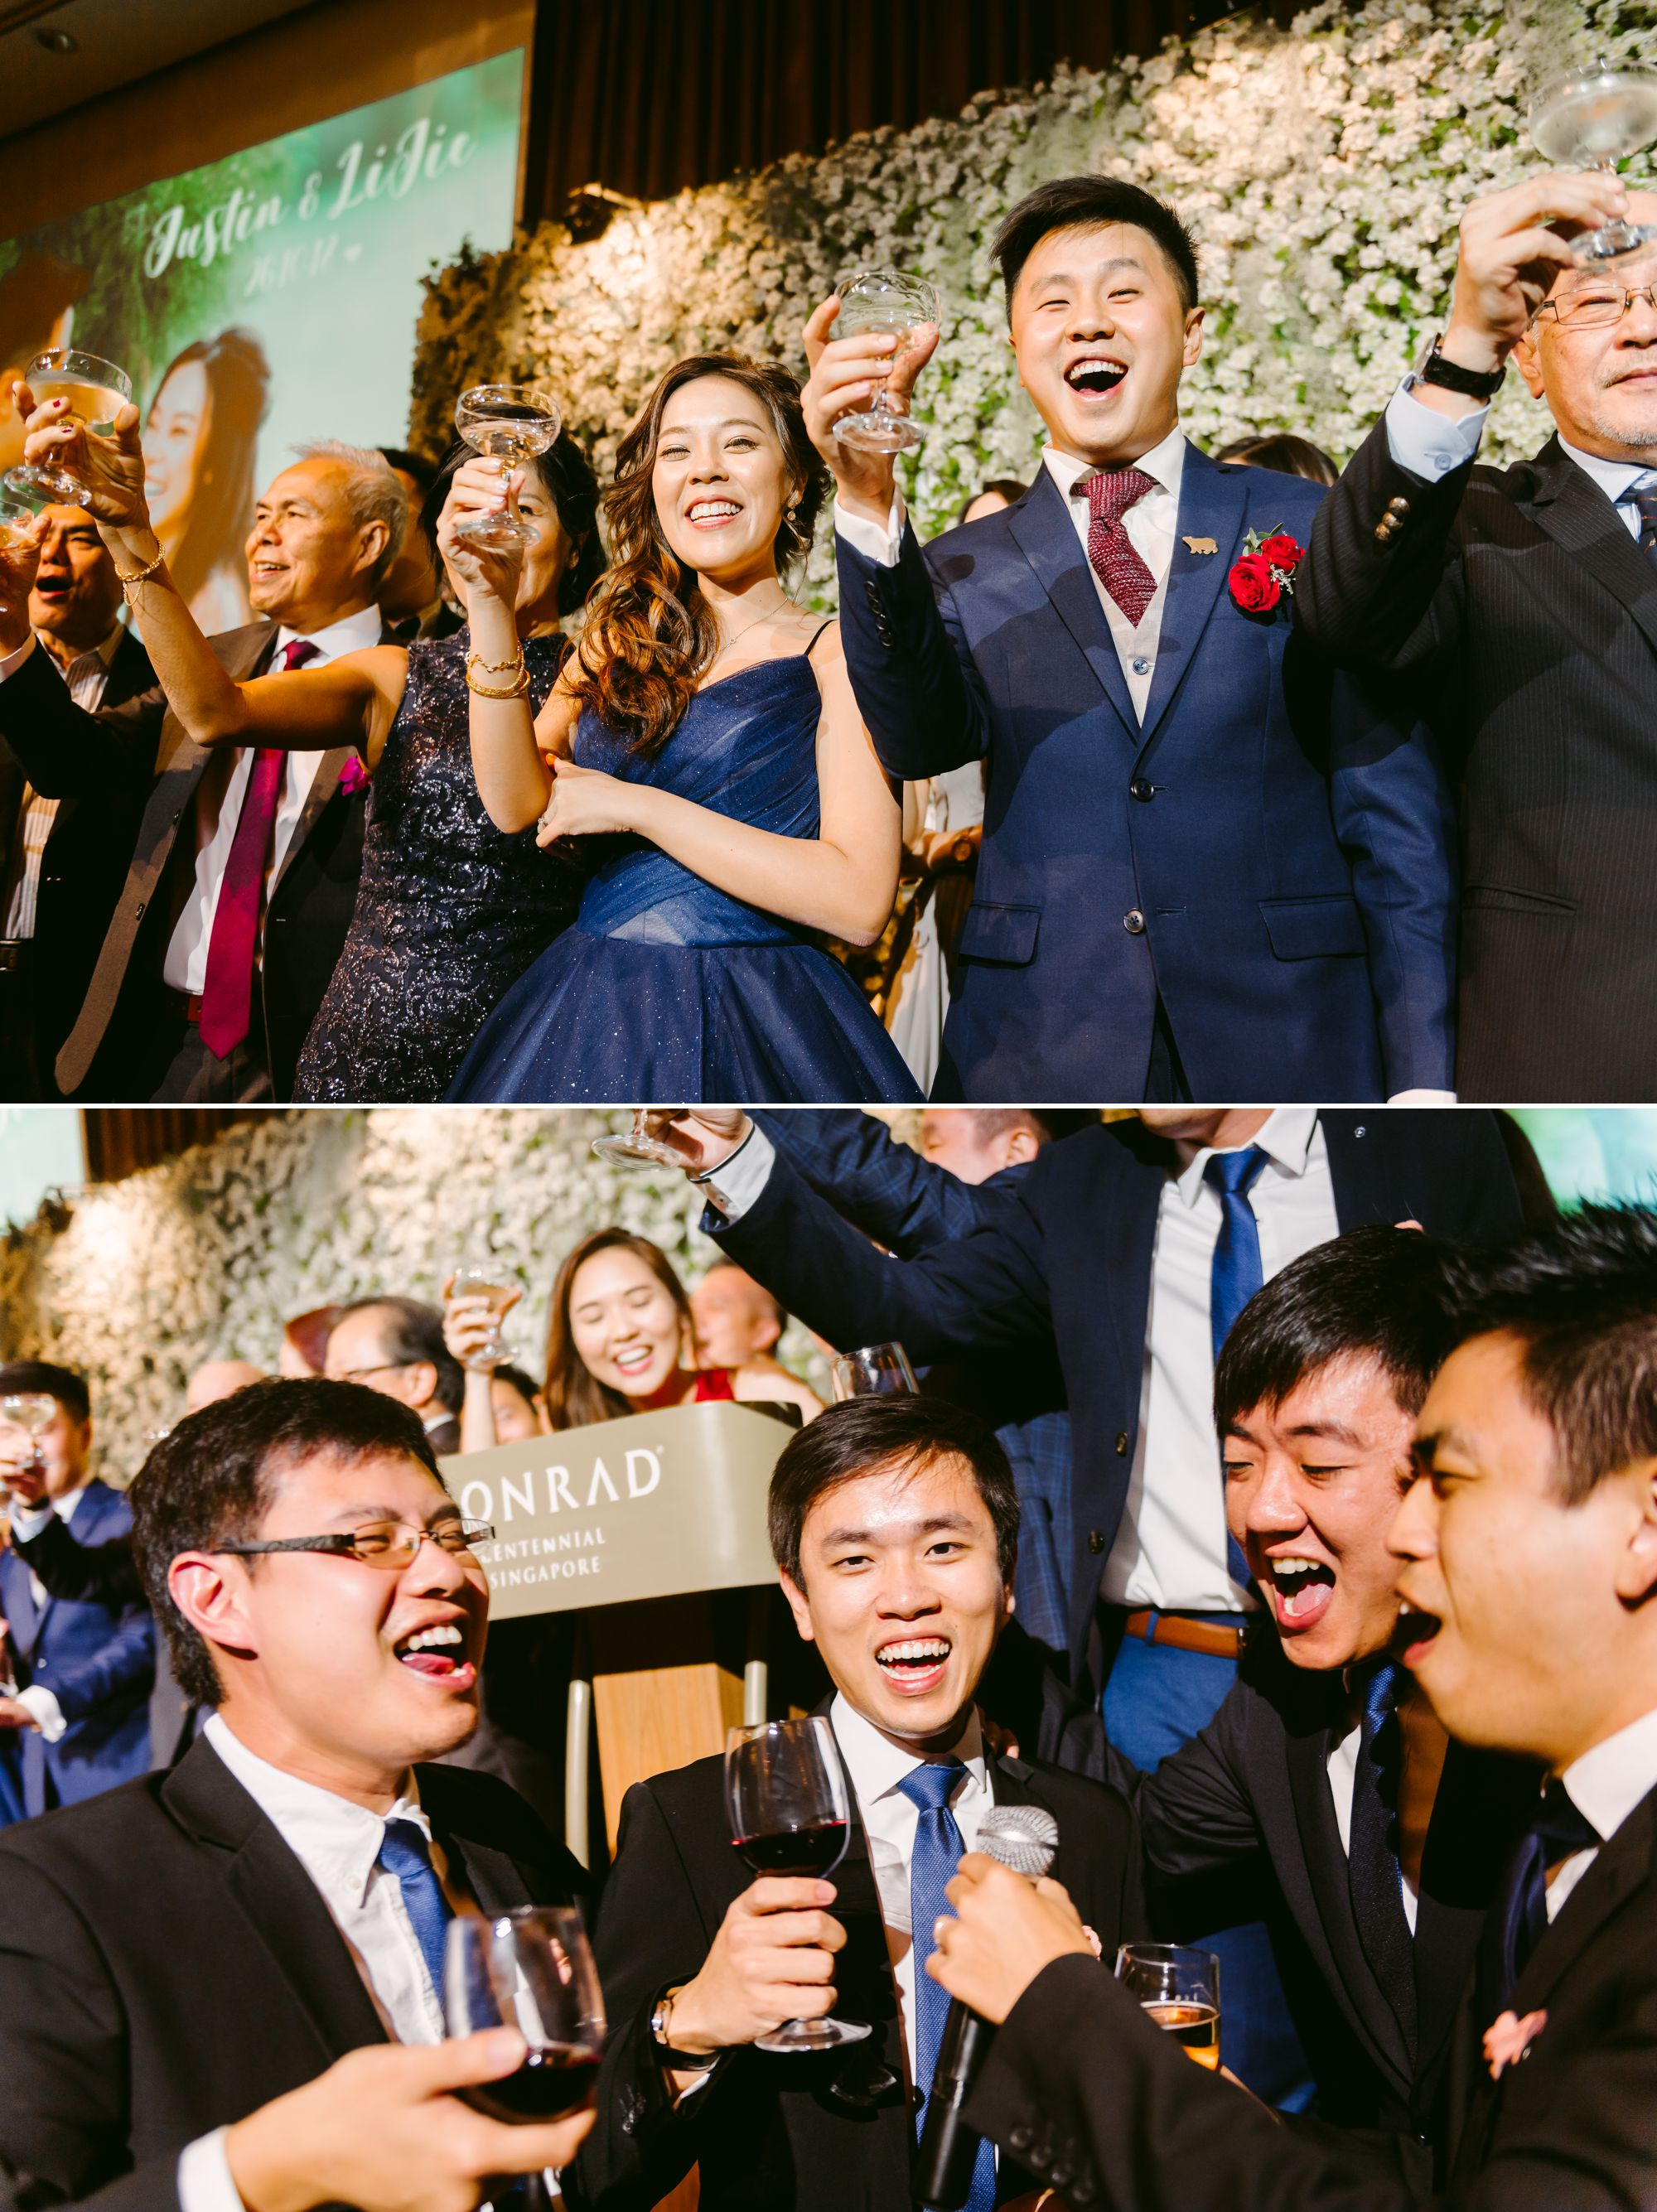 conrad_wedding_Singapore_ 42.jpg